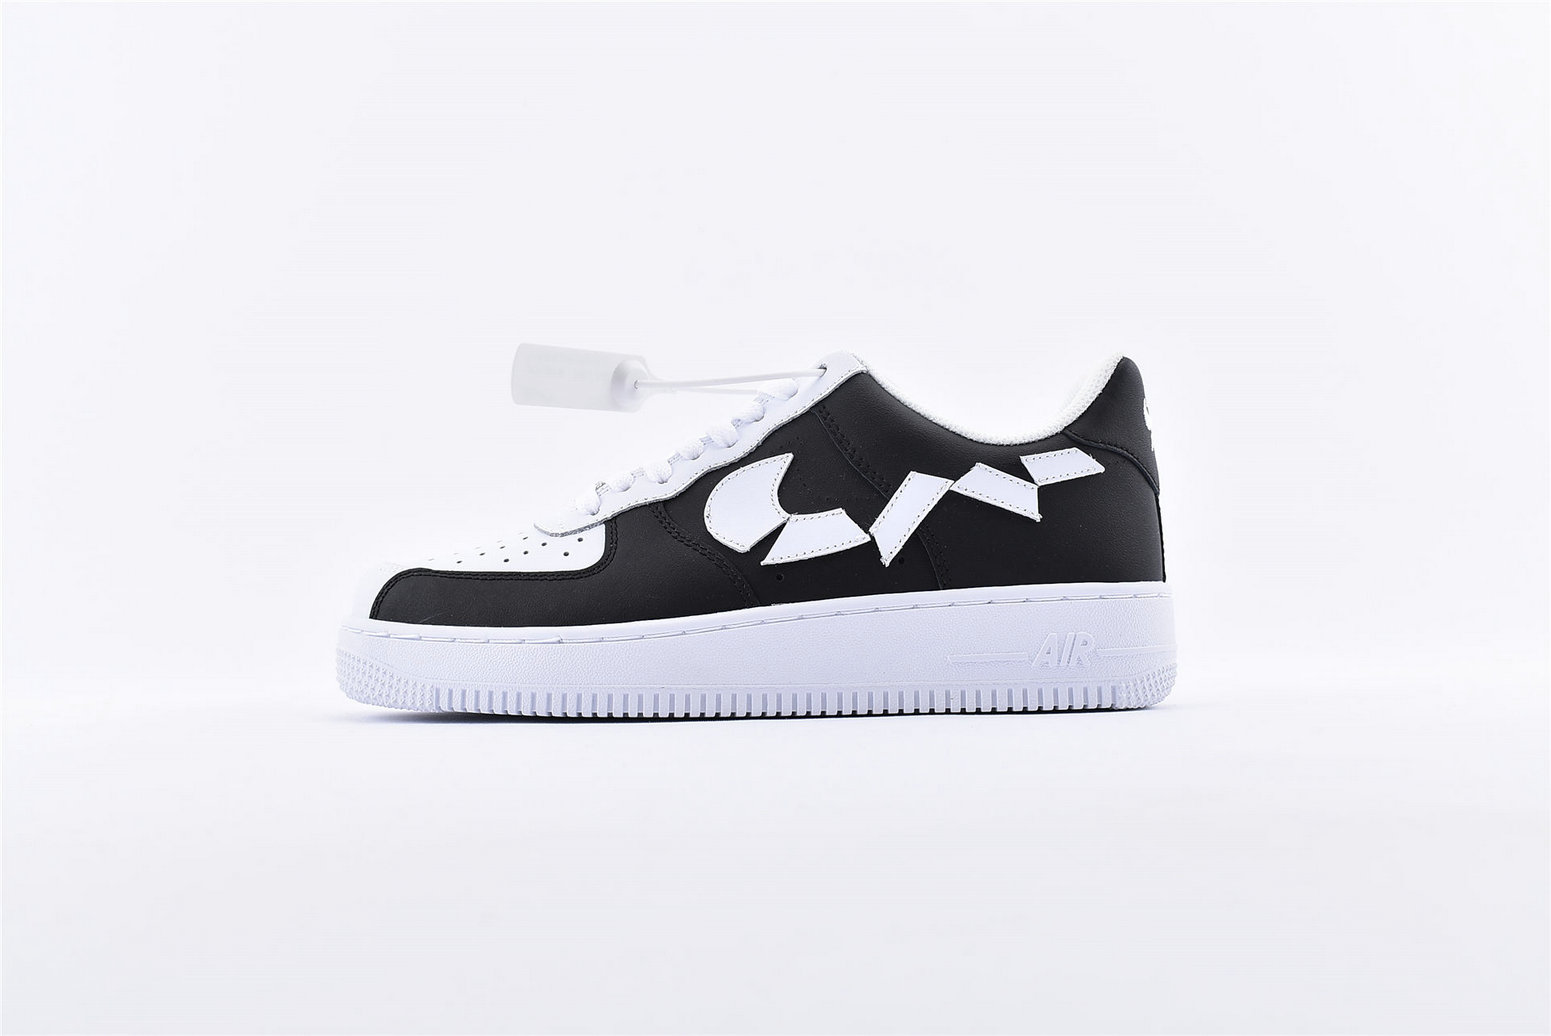 Where To Buy Wholesale Cheap Womens Nike Air Force 1 07 White Black 315124-011 - www.wholesaleflyknit.com